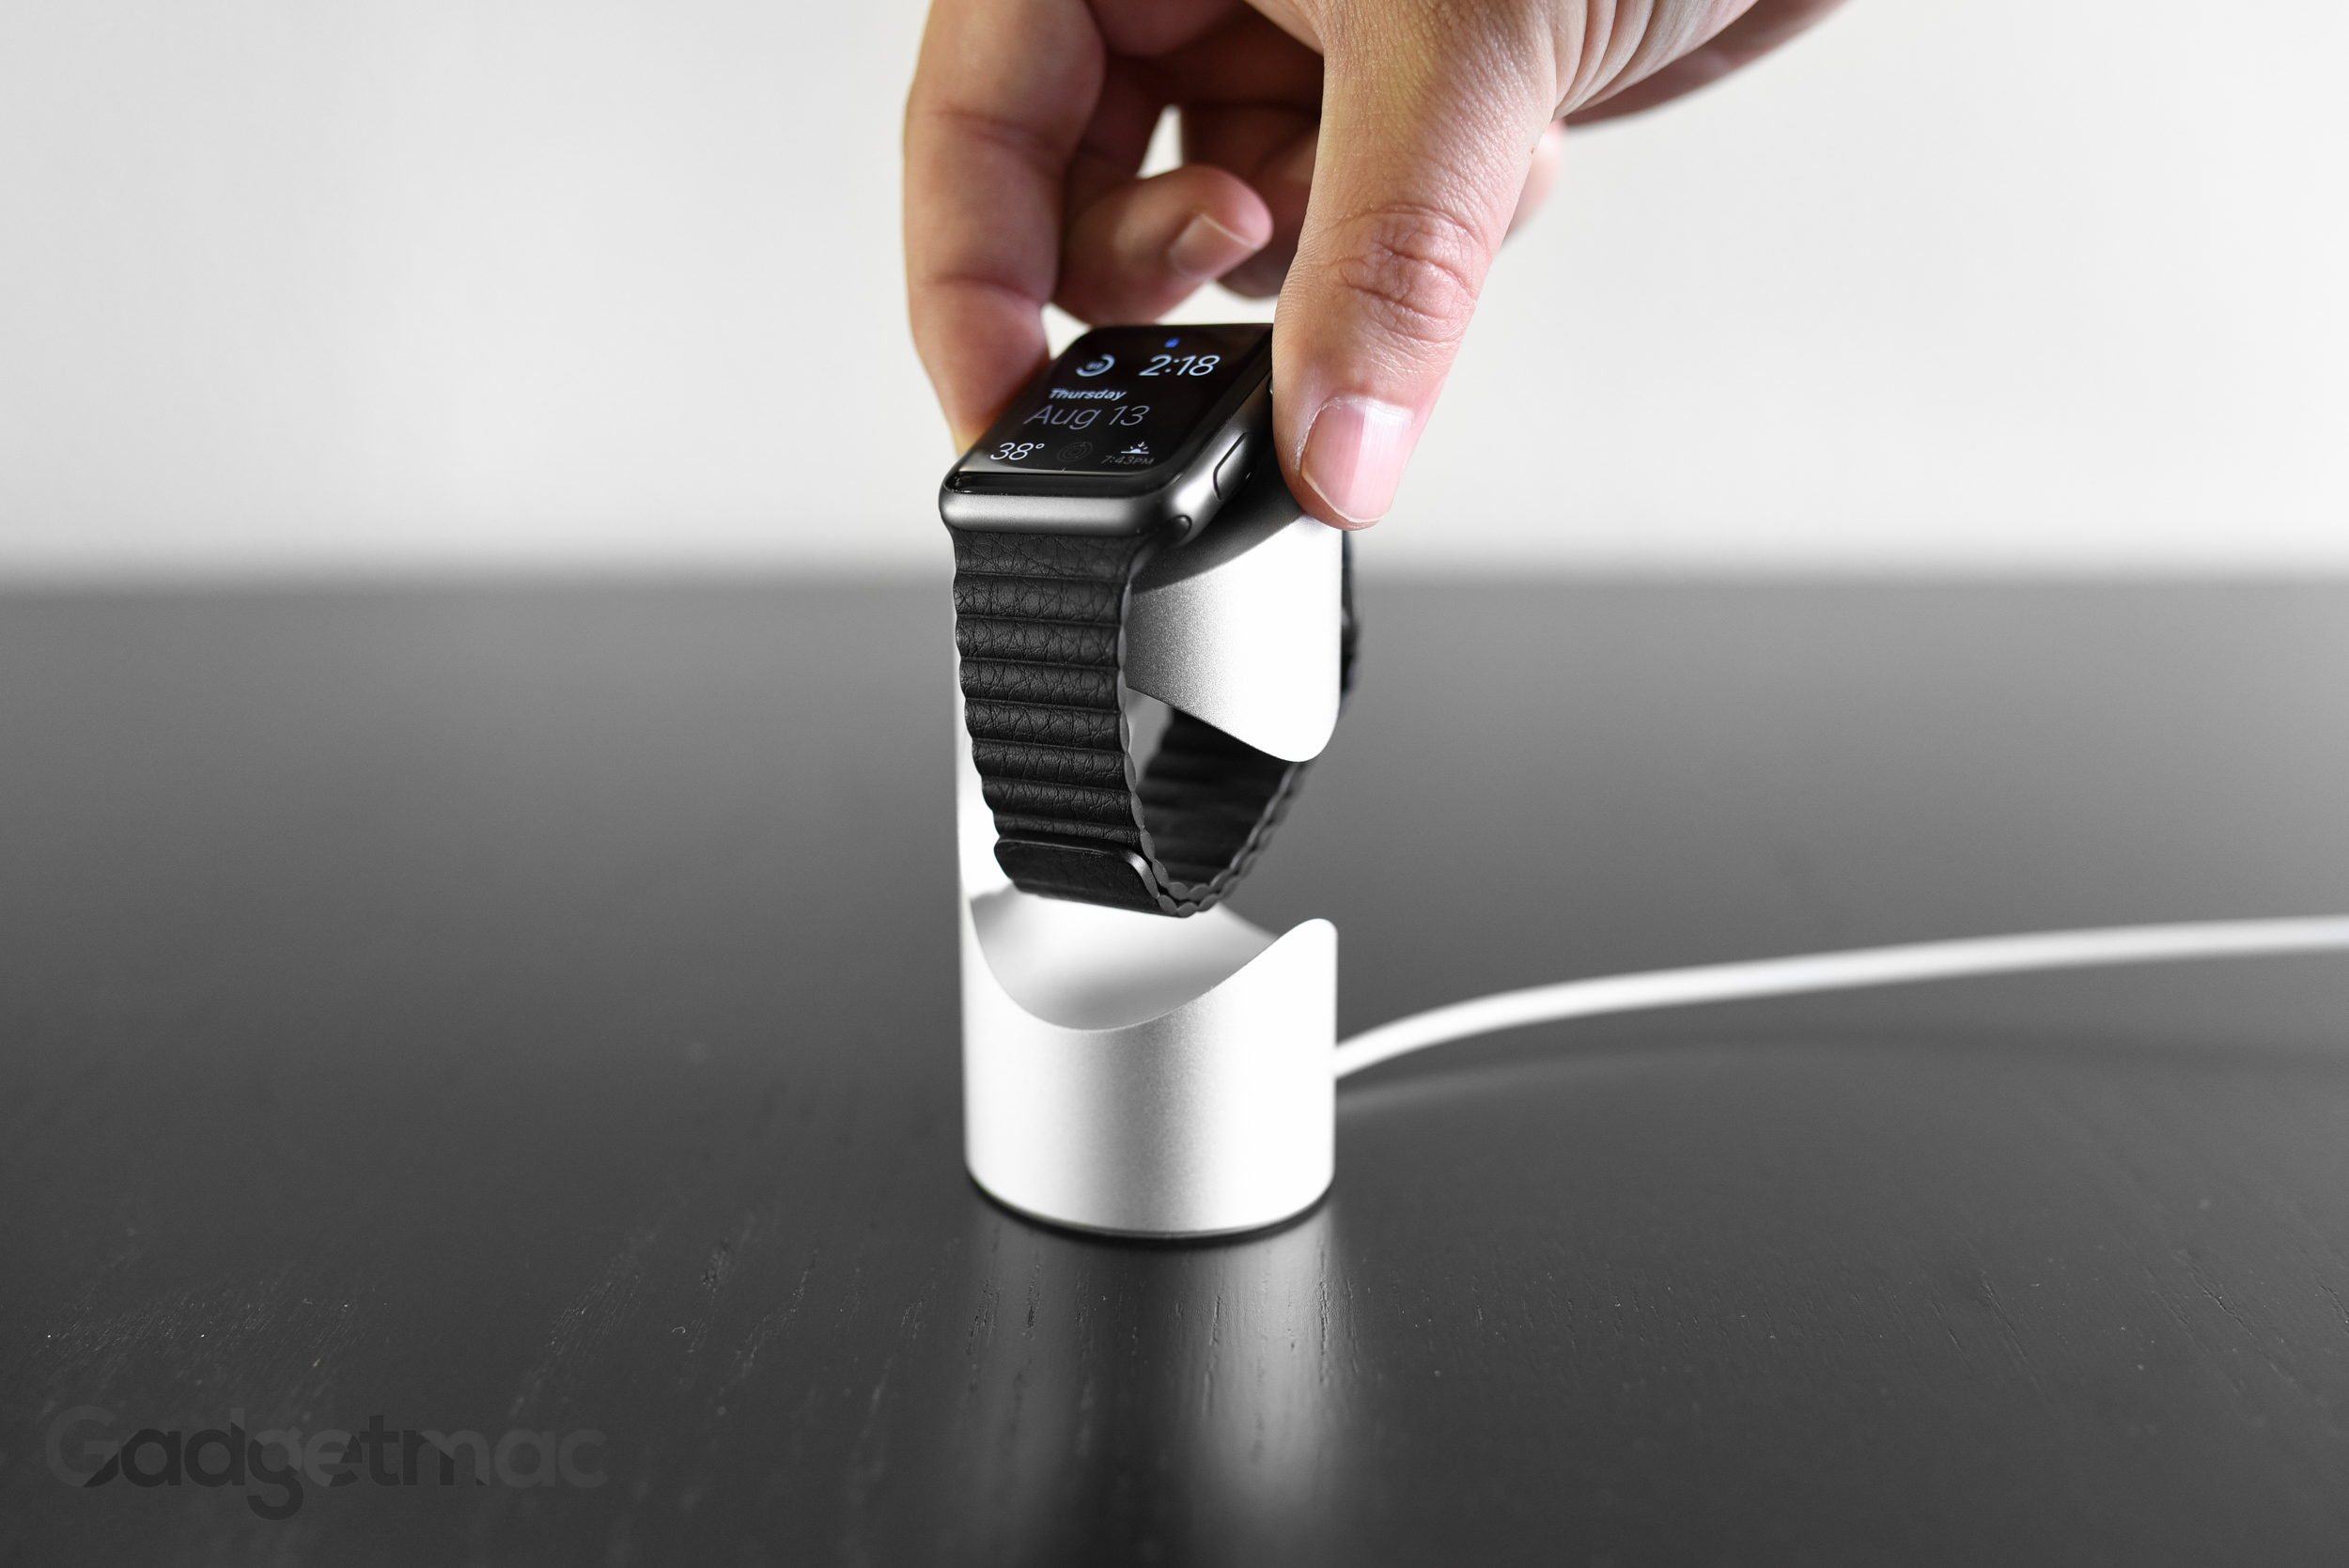 timestand-aluminum-charging-dock-stand-for-apple-watch.jpg